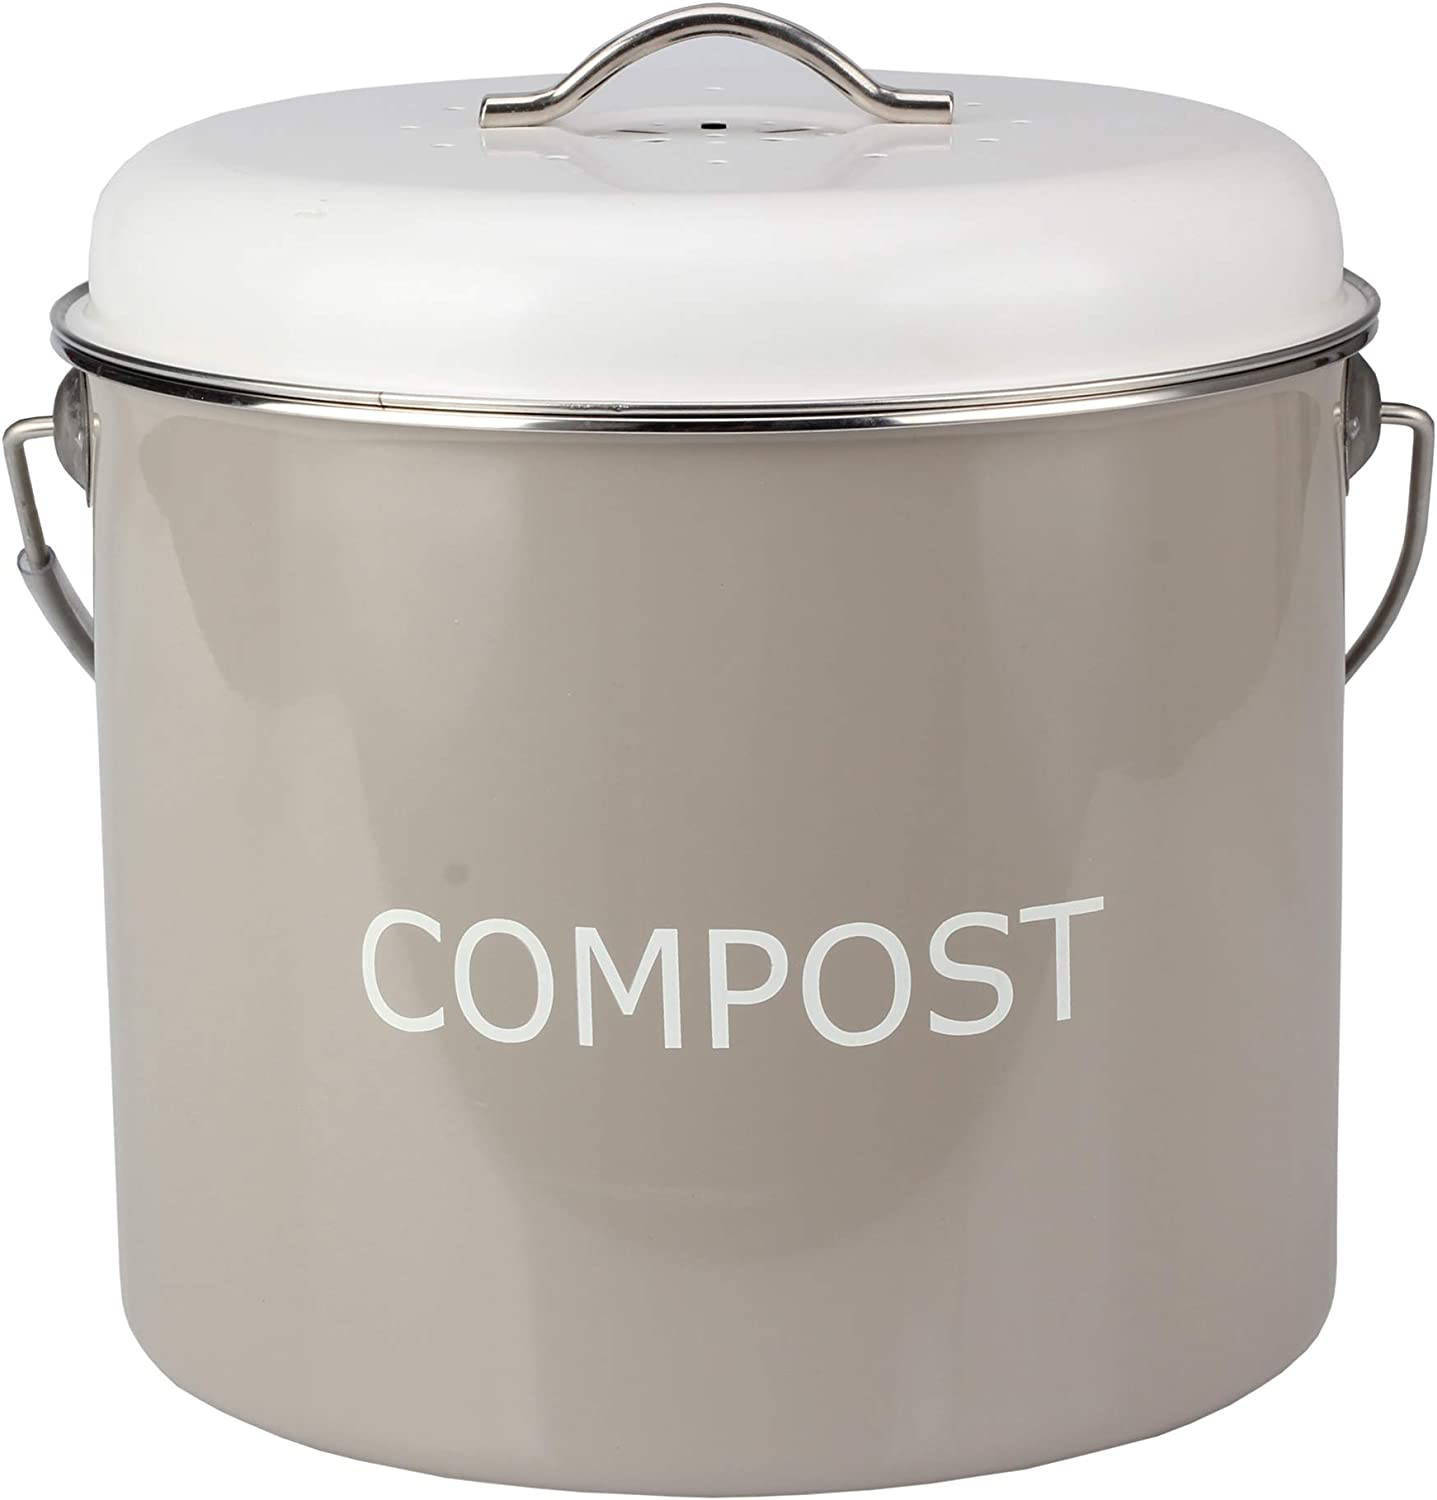 COMPOST BIN COUNTERTOP – 0.8 gallon/3 liter- Compost Bucket for Kitchen with Lid and 4 Charcoal filters in Vintage Look by HeAndy